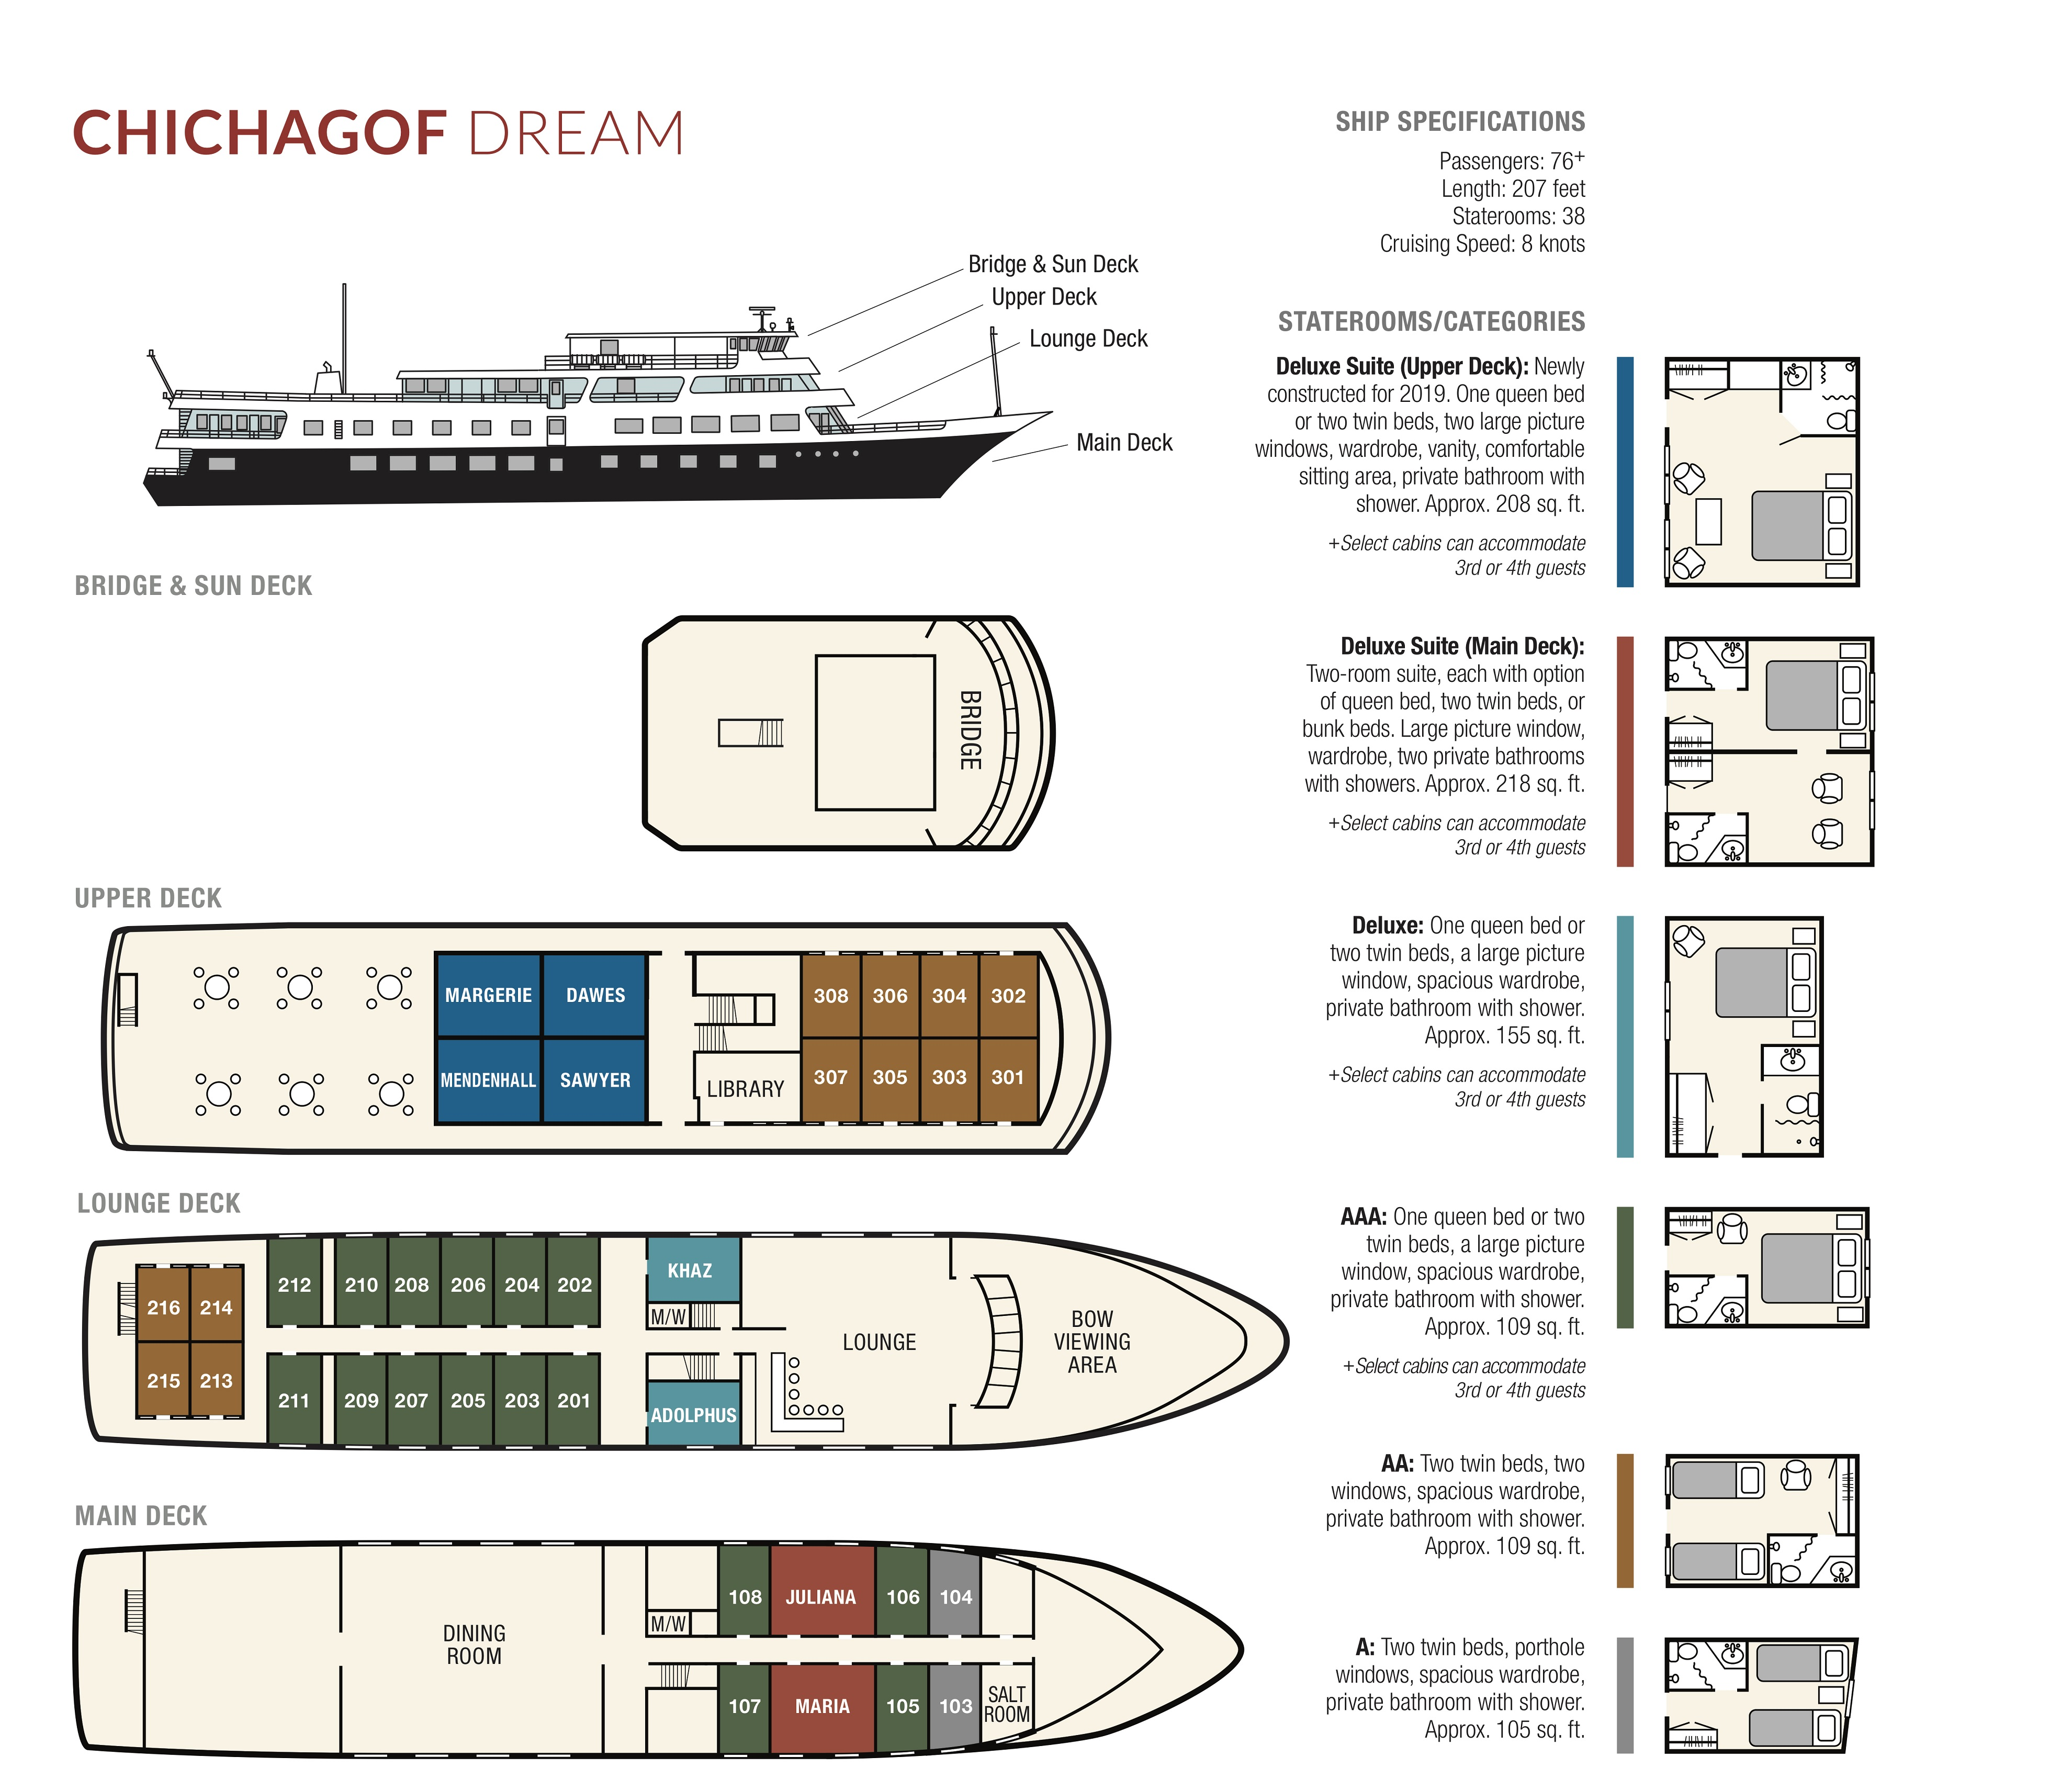 Cabin layout for Chichagof Dream